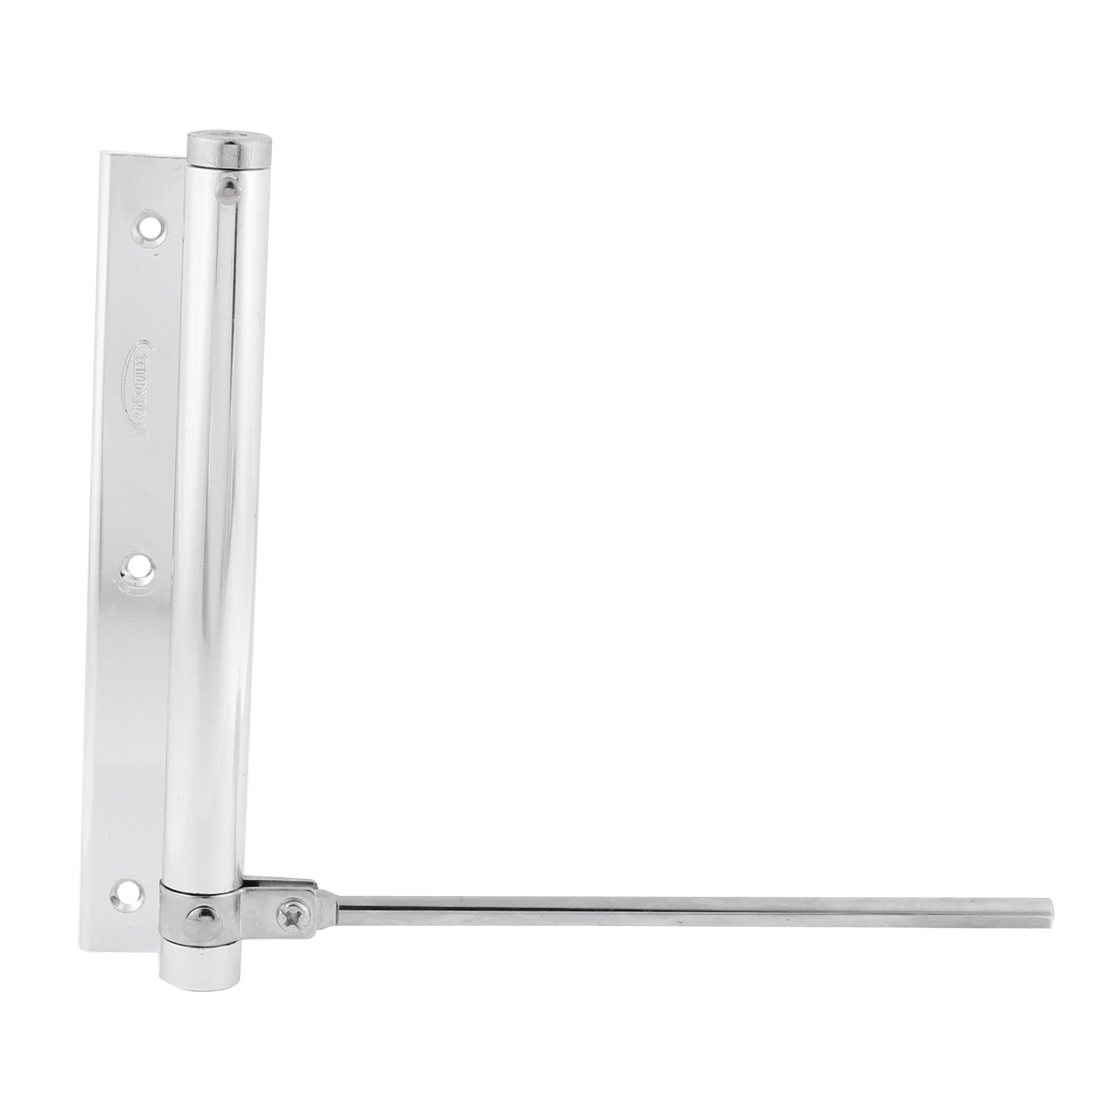 Home Office Automatic Metal Door Closers Hardware Silver Tone 18mm x 185mm